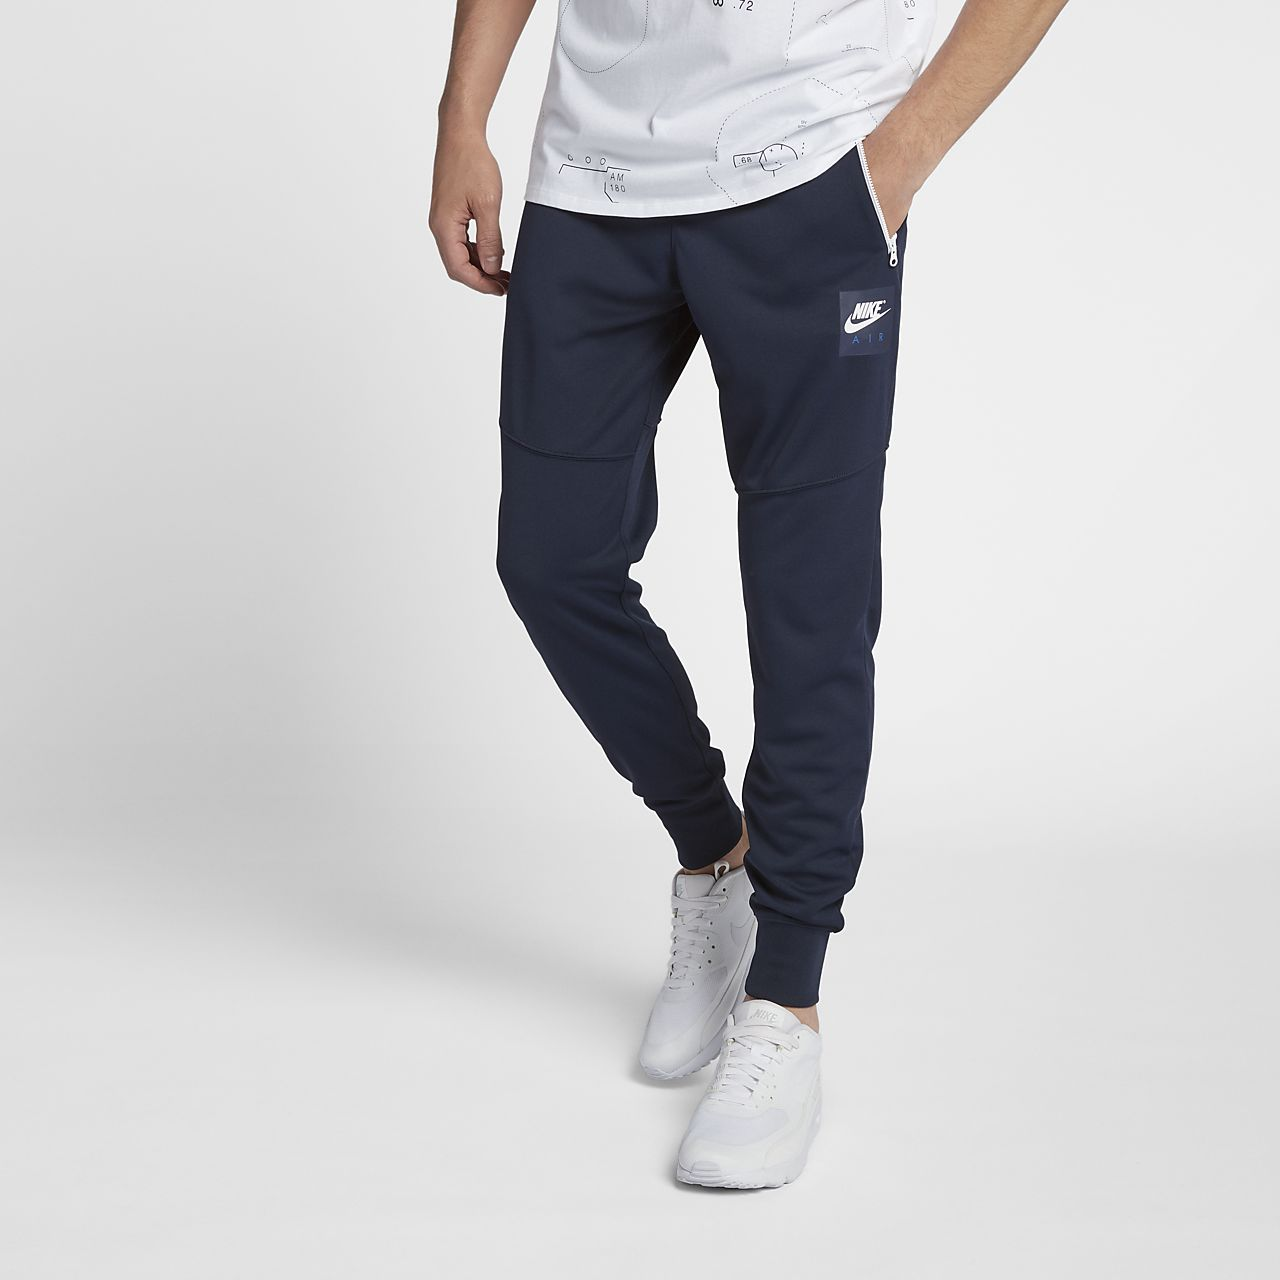 Low Resolution Nike Air Men's Trousers Nike Air Men's Trousers